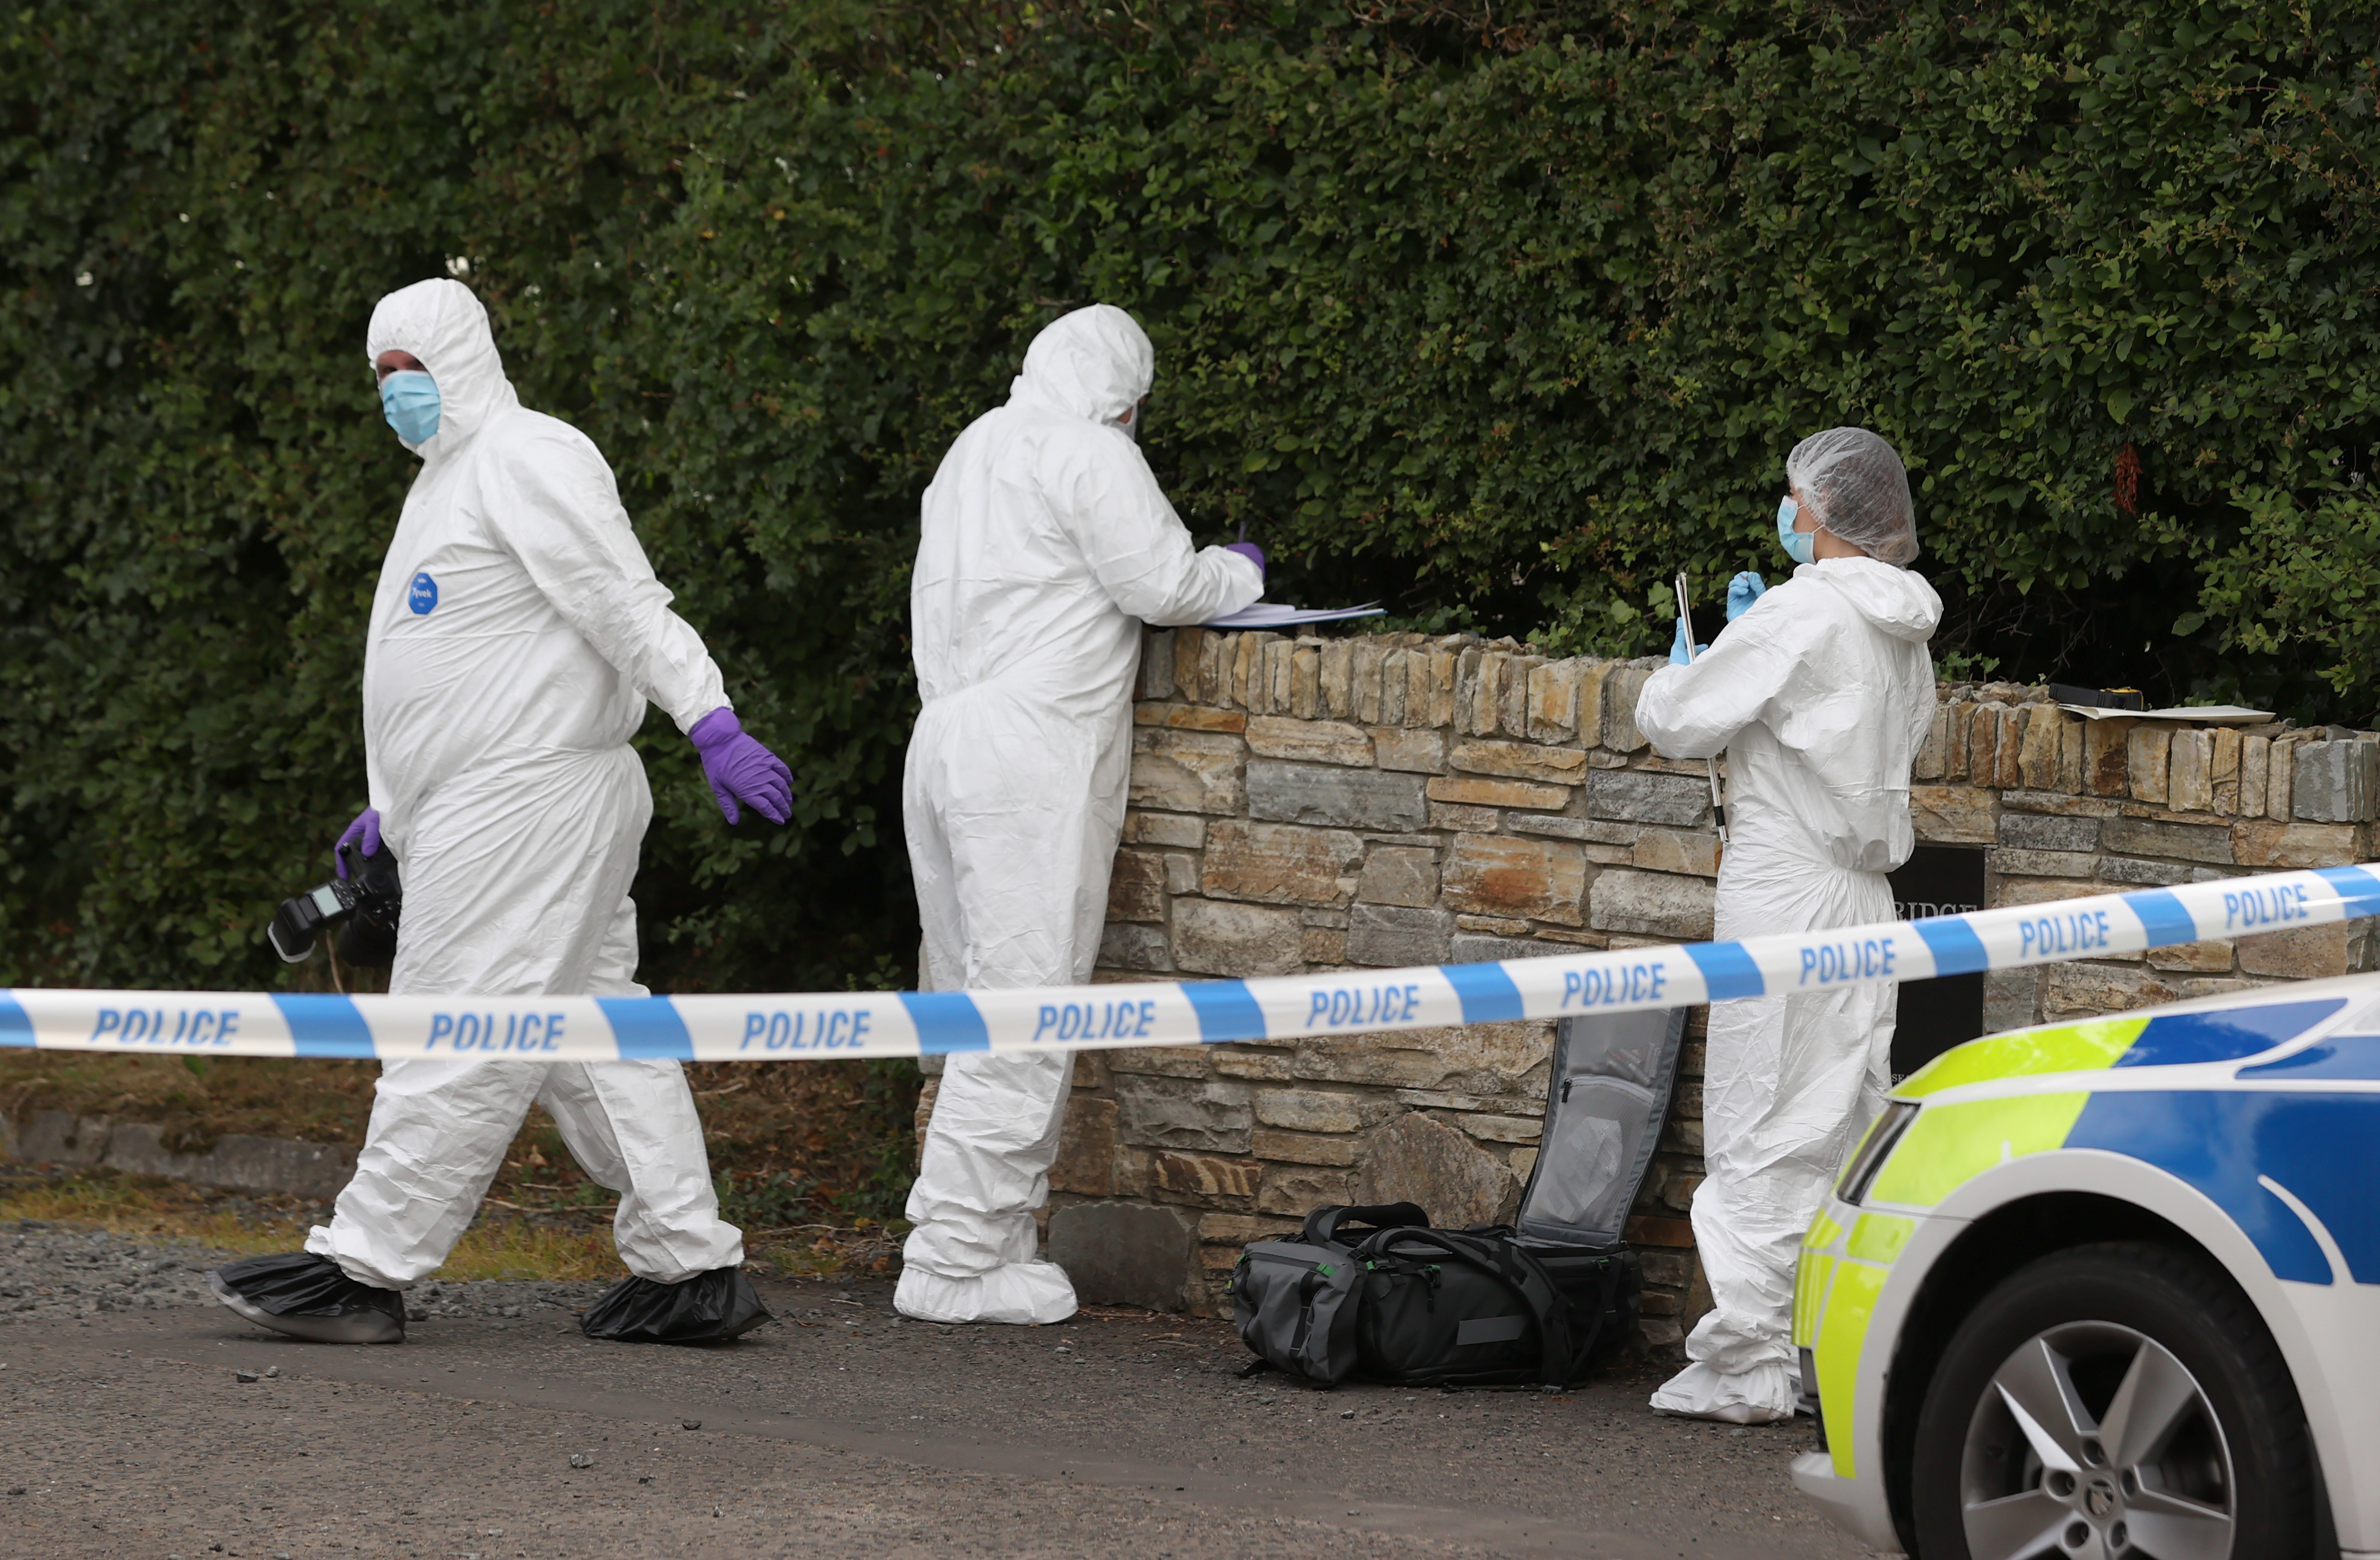 <p>Forensic officers at the Swanns Bridge Glamping site near near Limavady in Co Londonderry where a 37 years old woman was stabbed to death on Monday. A 53 year old man has been arrested and police said both the victim and the suspect were holidaymakers. Picture date: Tuesday July 13, 2021.</p>